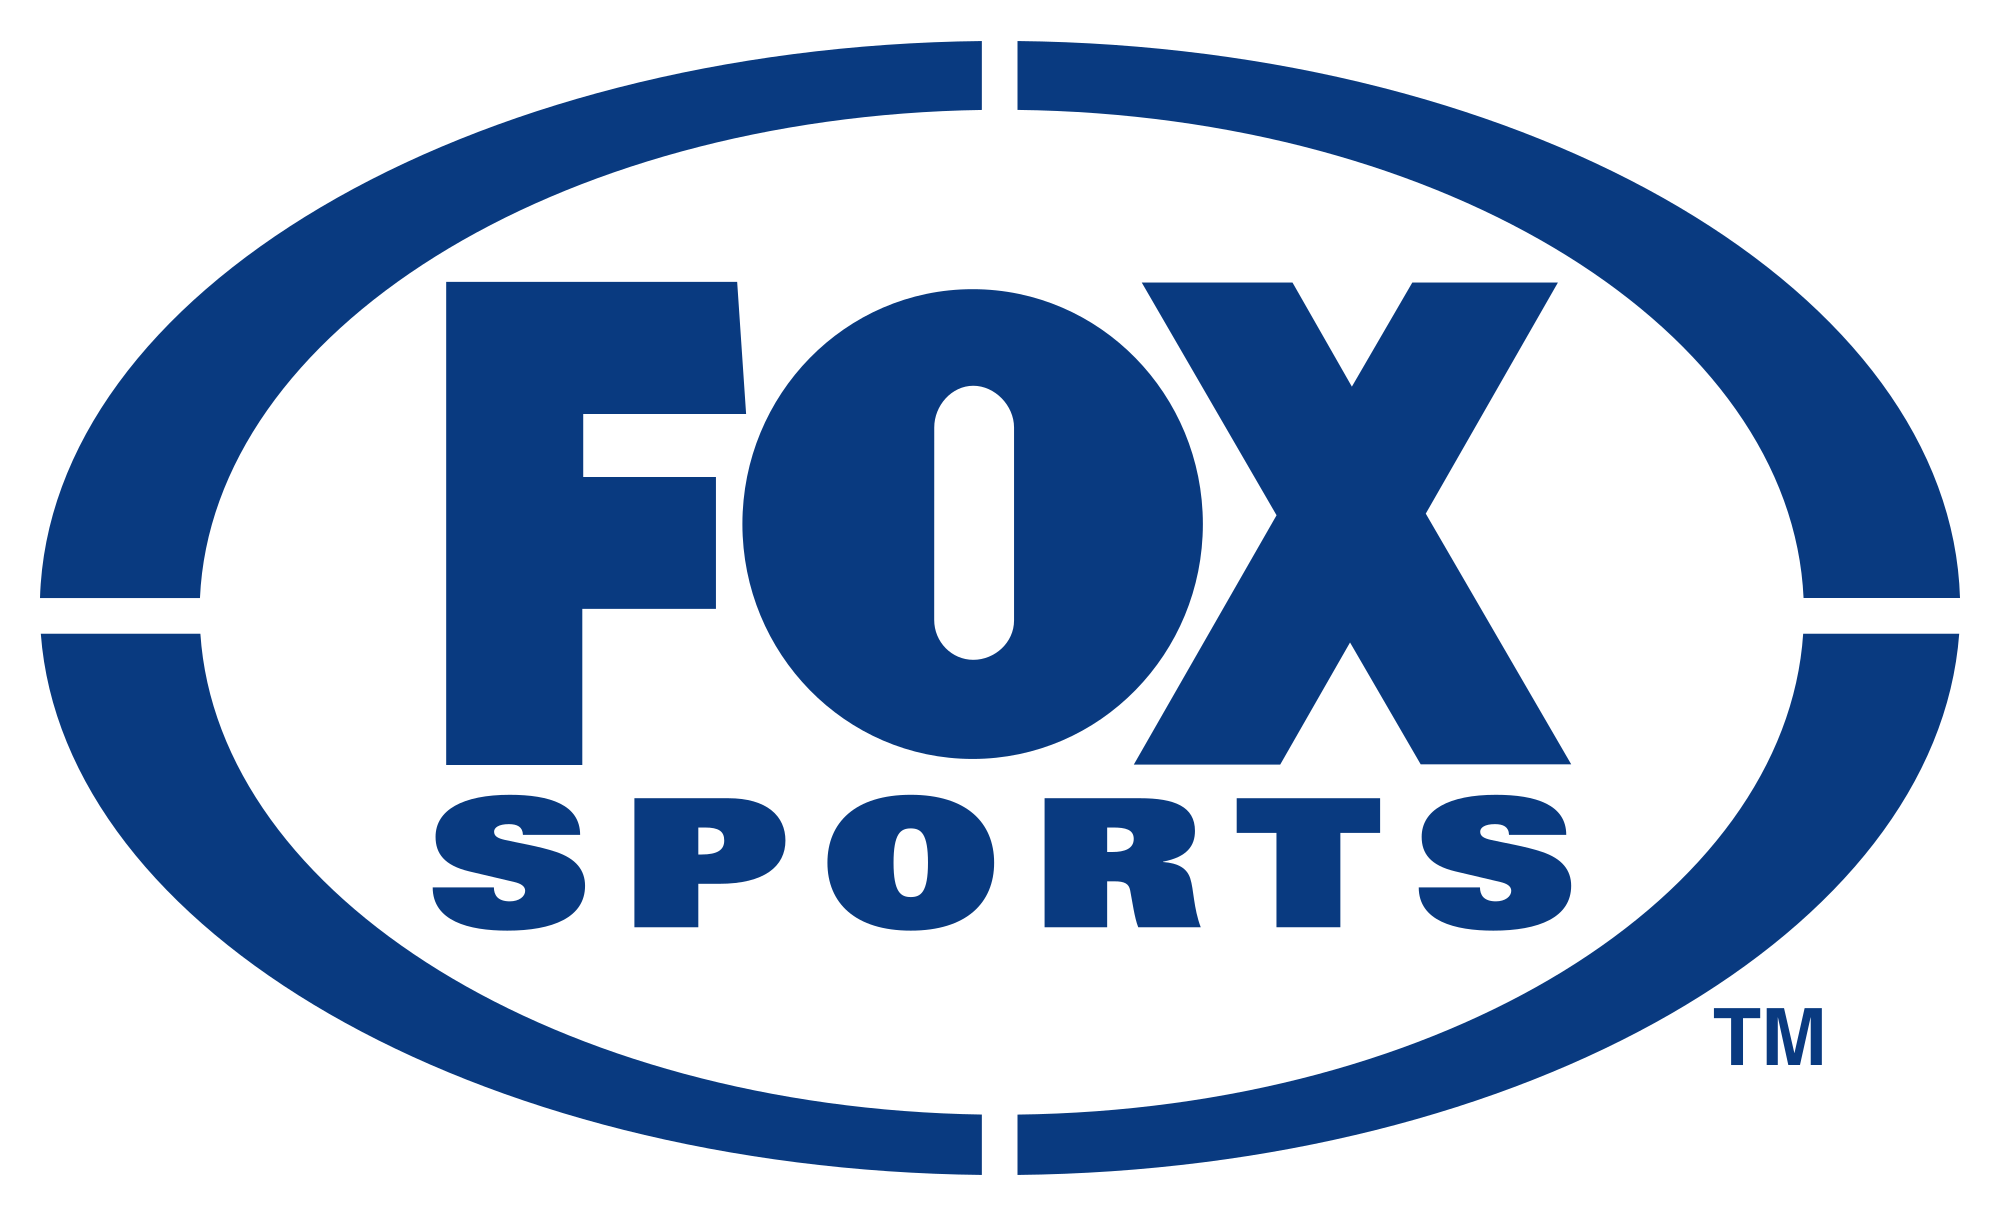 Programación de Fox Sports en vivo por Internet